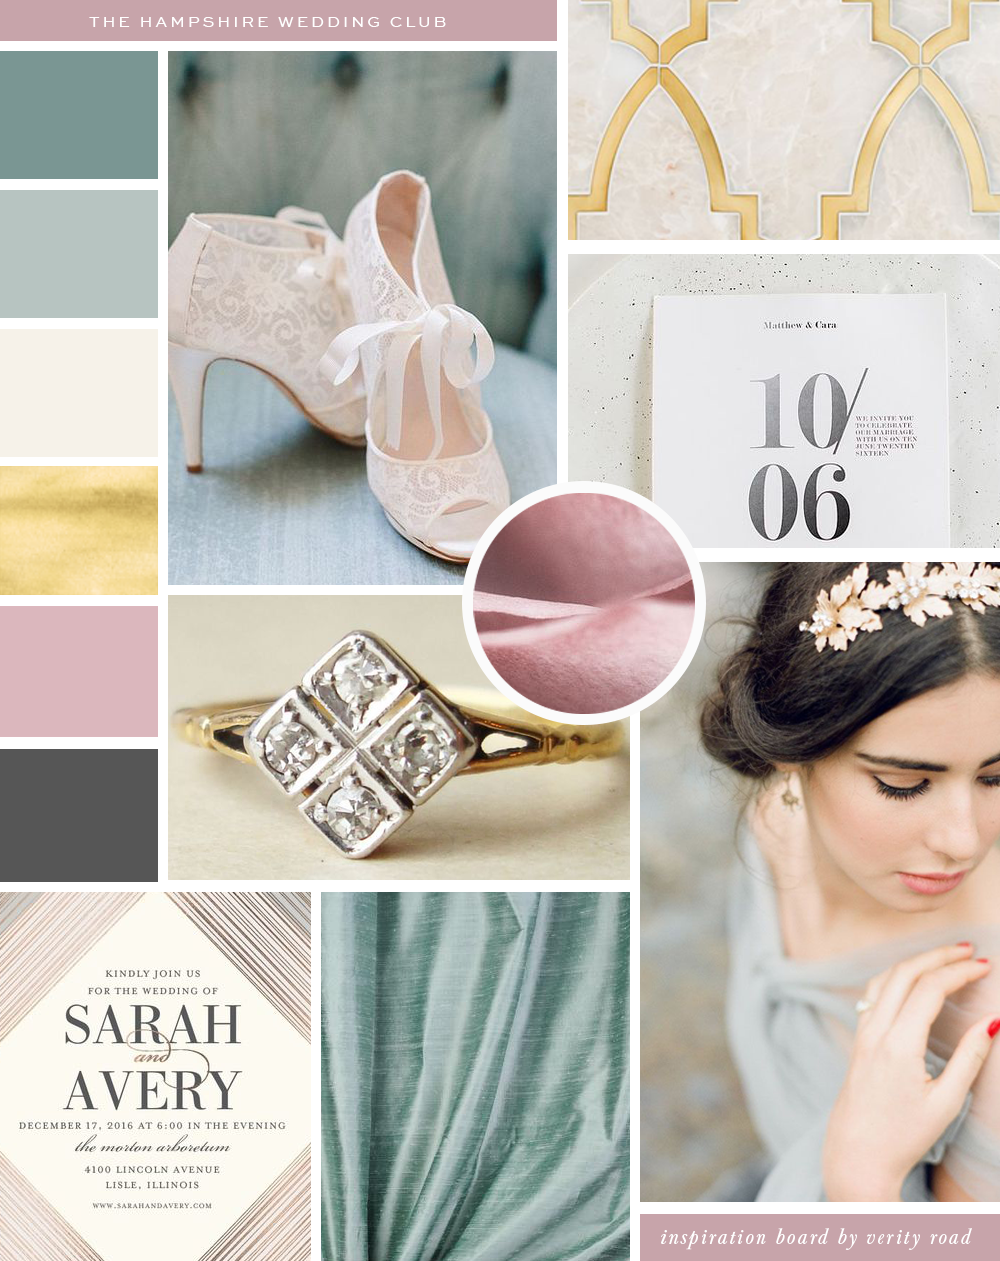 Mood board for THE HAMPSHIRE WEDDING CLUB, WEDDING PROFESSIONALS, WEDDING SUPPLIERS, PHOTOGRAPHERS, WEDDING BUSINESS, WEDDING PLANNERS, FLORISTS.luxury feminine brand styling and web design for female entrepreneurs FROM VERITY ROAD. Inspiration board of typography, Sans serif, CHARCOAL, DUSTY ROSE, TEAL,MUTED MINT, gold, color palette, pattern, TEXTURE, ROMANTIC BRIDE, LUXURY WEDDING, ELEGANT HIGH-END ROMANCE, business owner, blogger, watercolor, geometric shape. See more for brand board, brand style guide, social media branding .